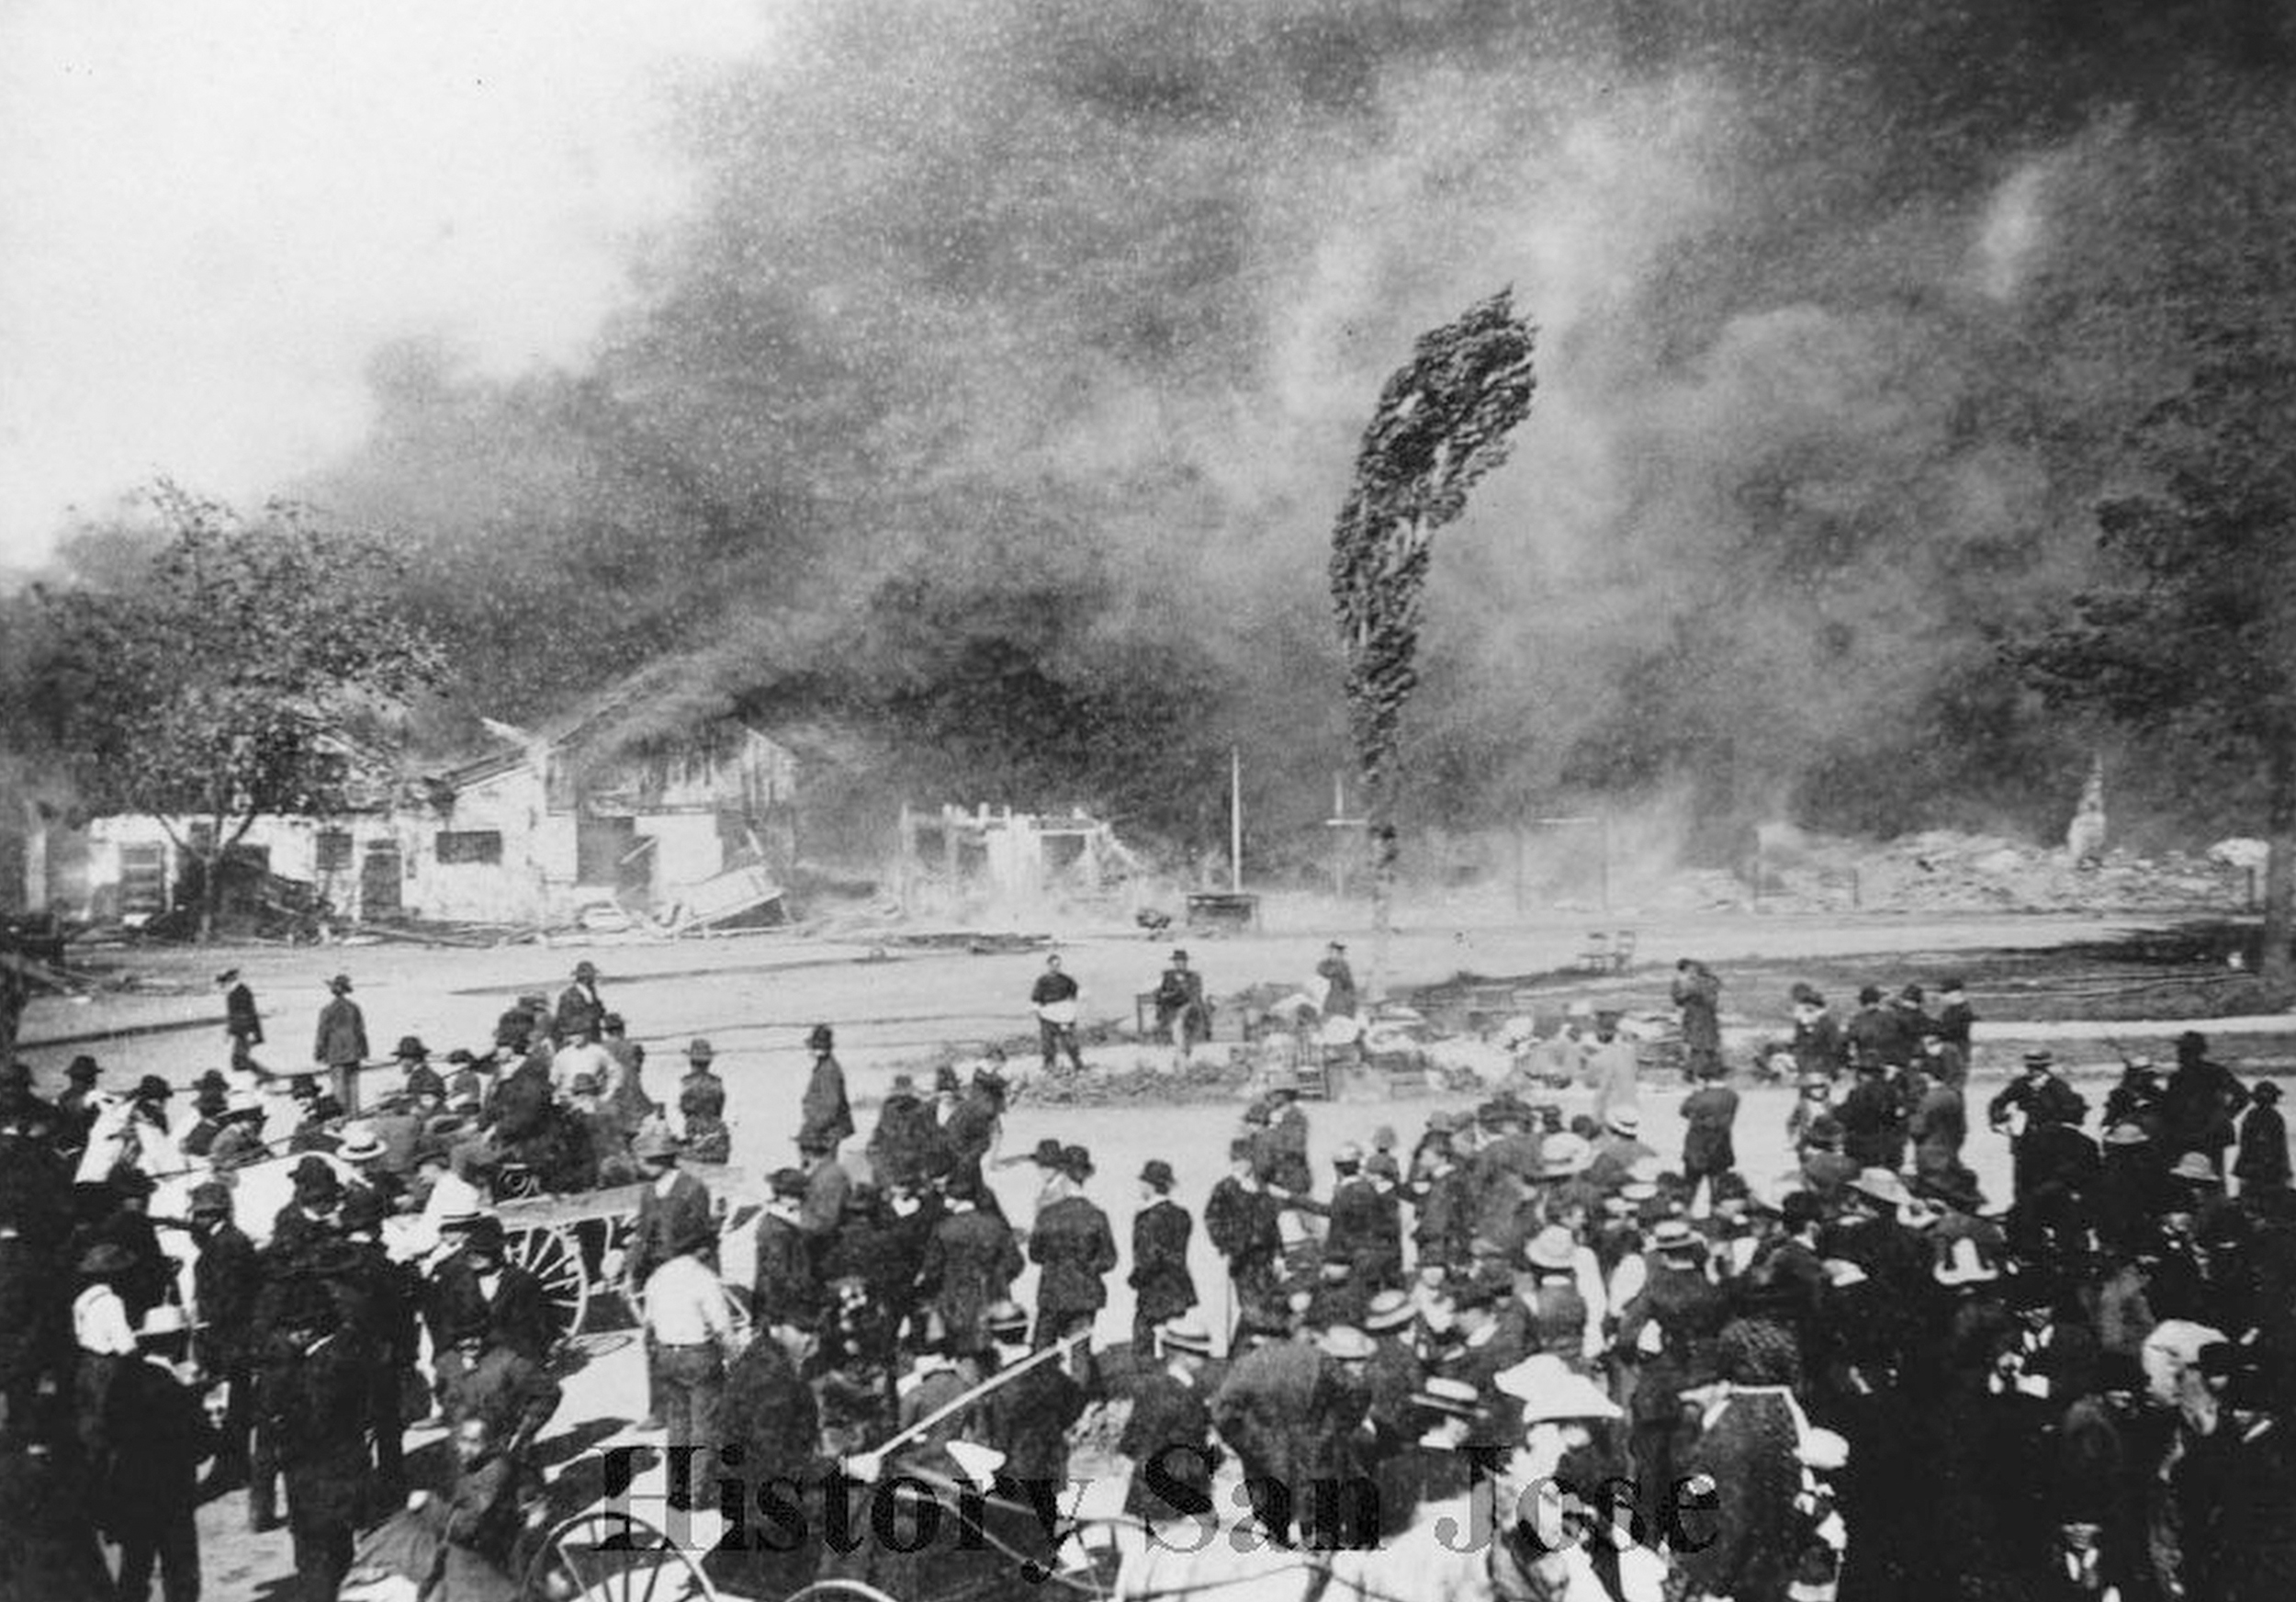 San Jose formally apologizes for the arson of its Chinatown more than a century ago